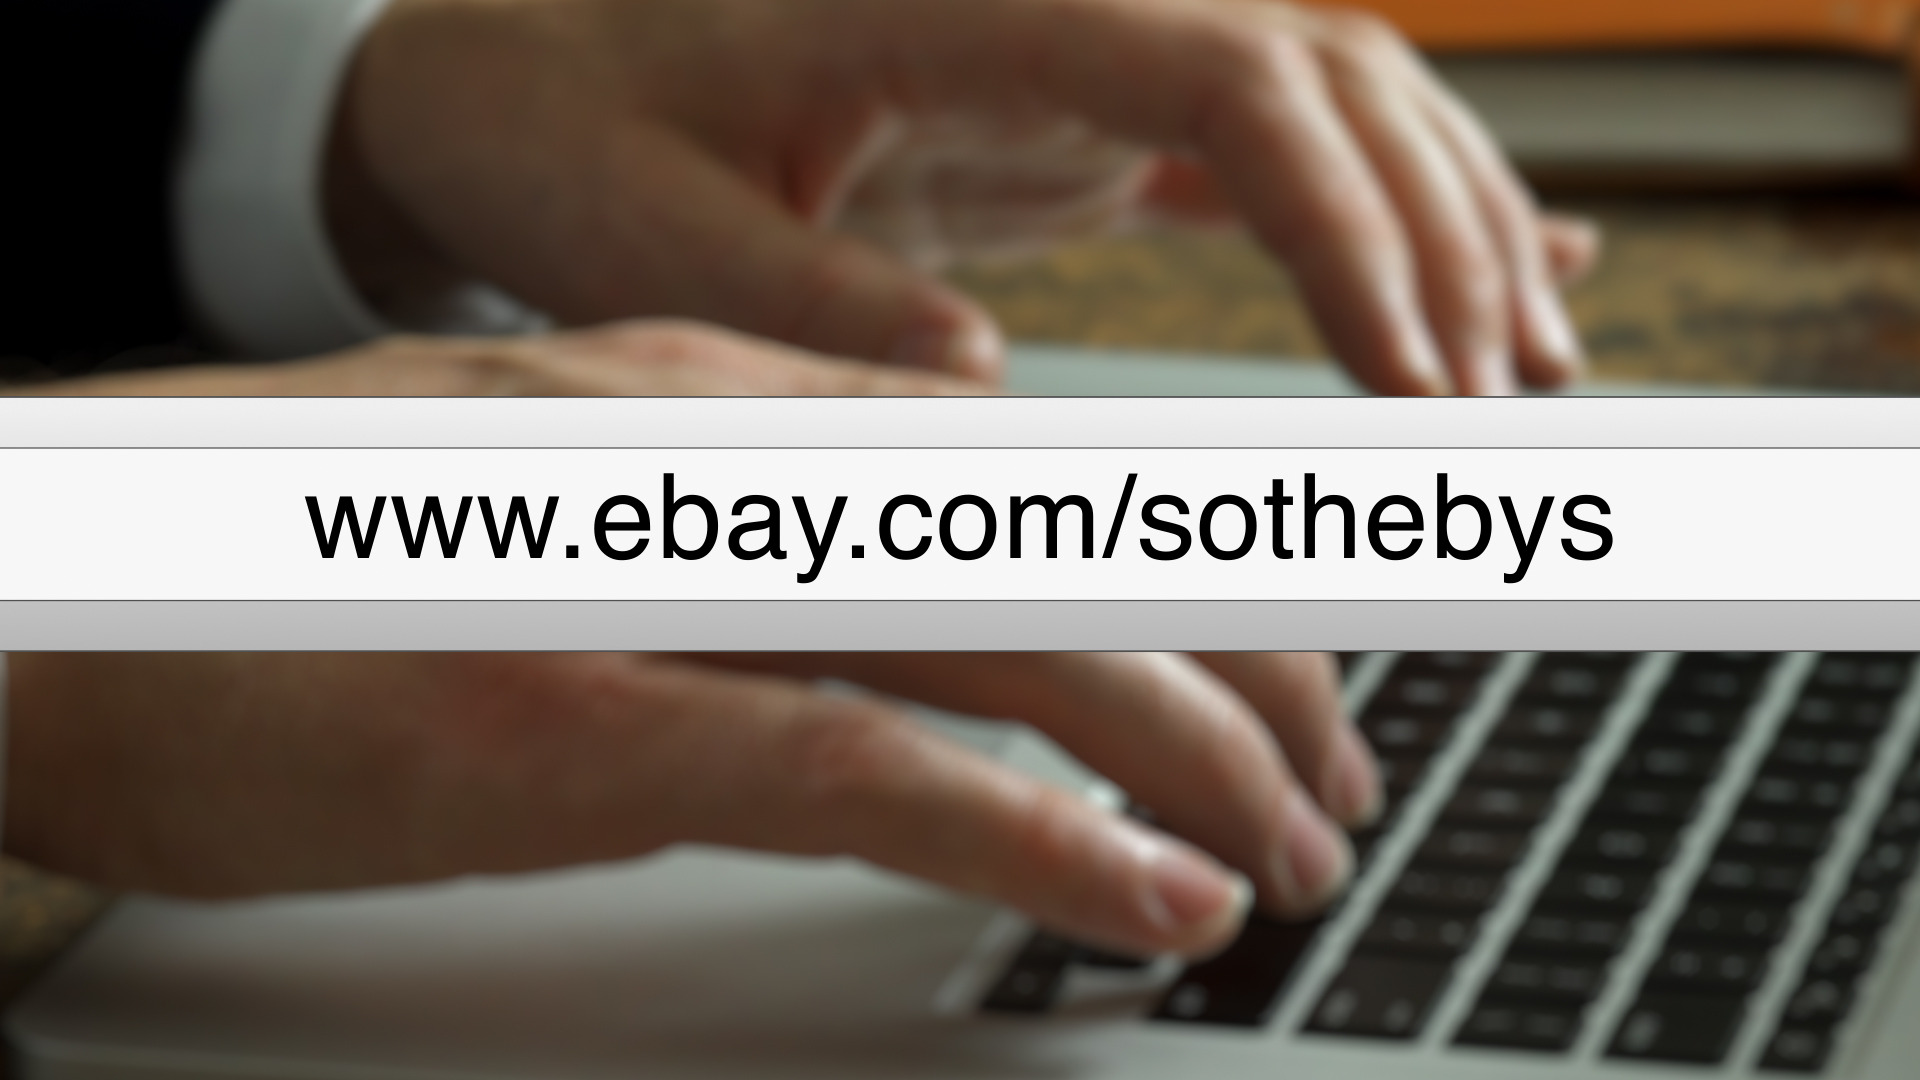 eBay | About Live Auctions from Sothebys